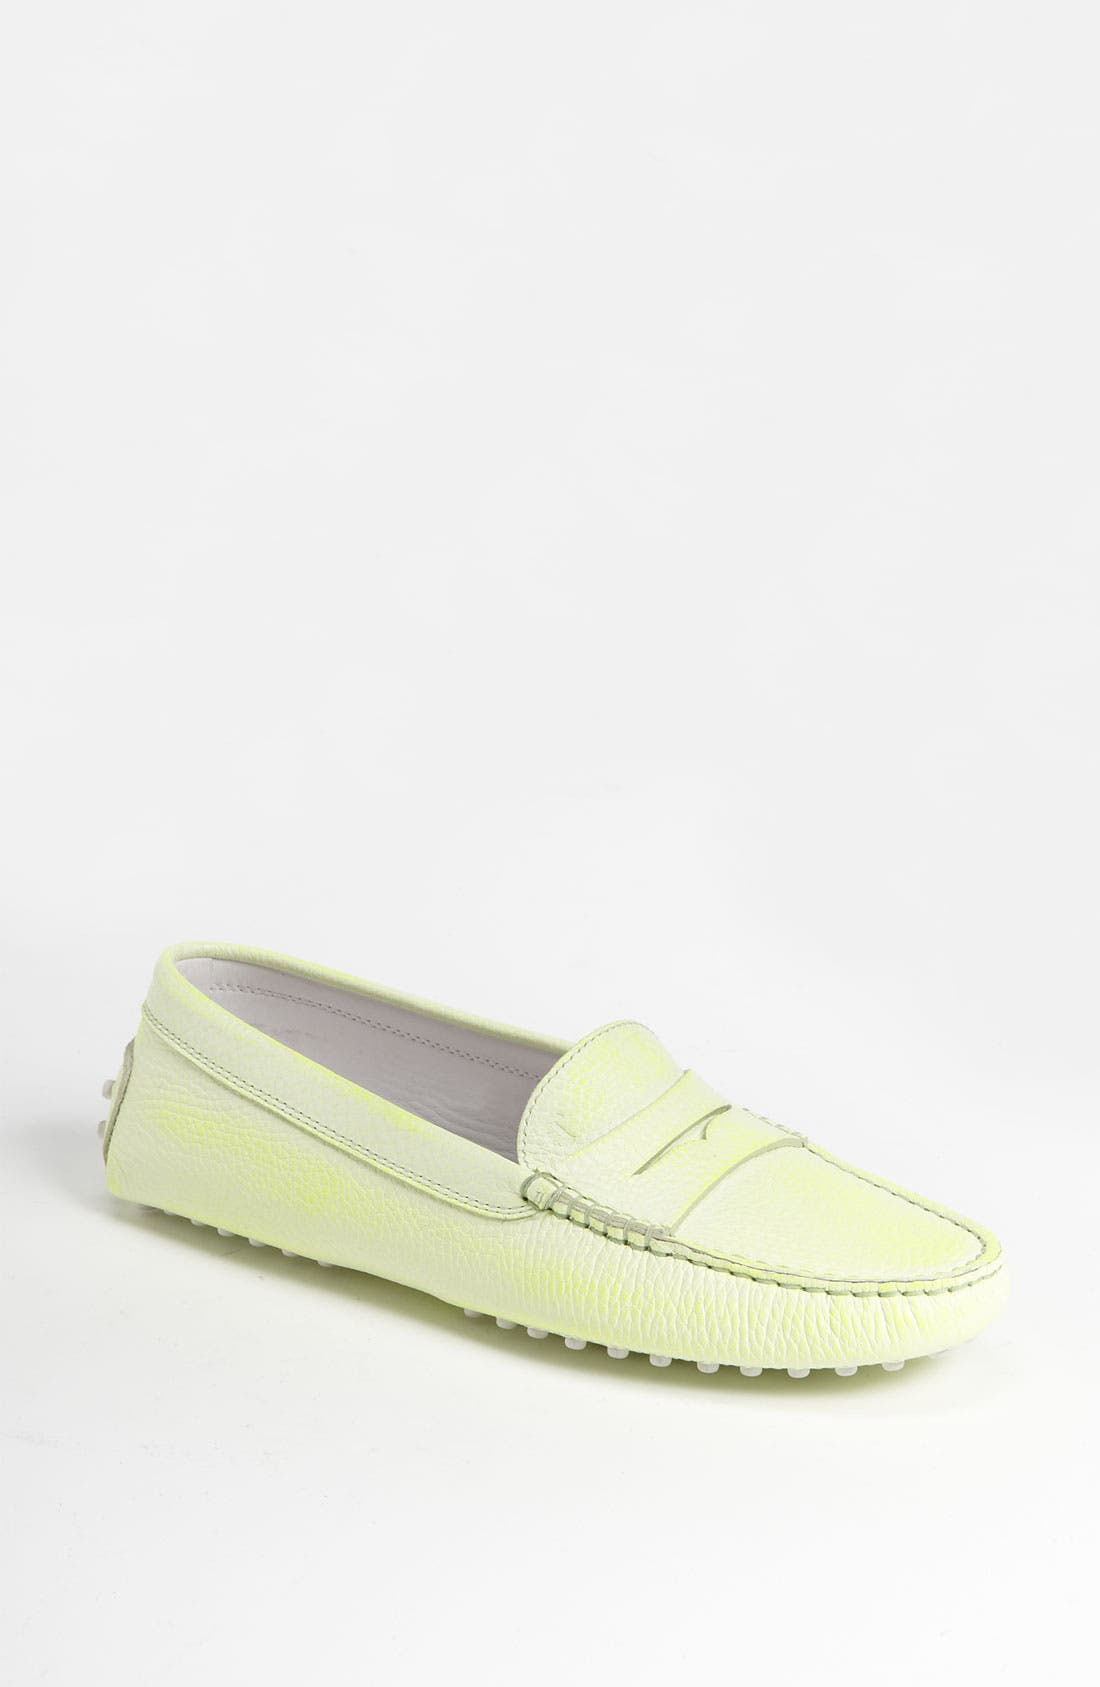 Alternate Image 1 Selected - Tod's 'Neon Gommini' Moccasin